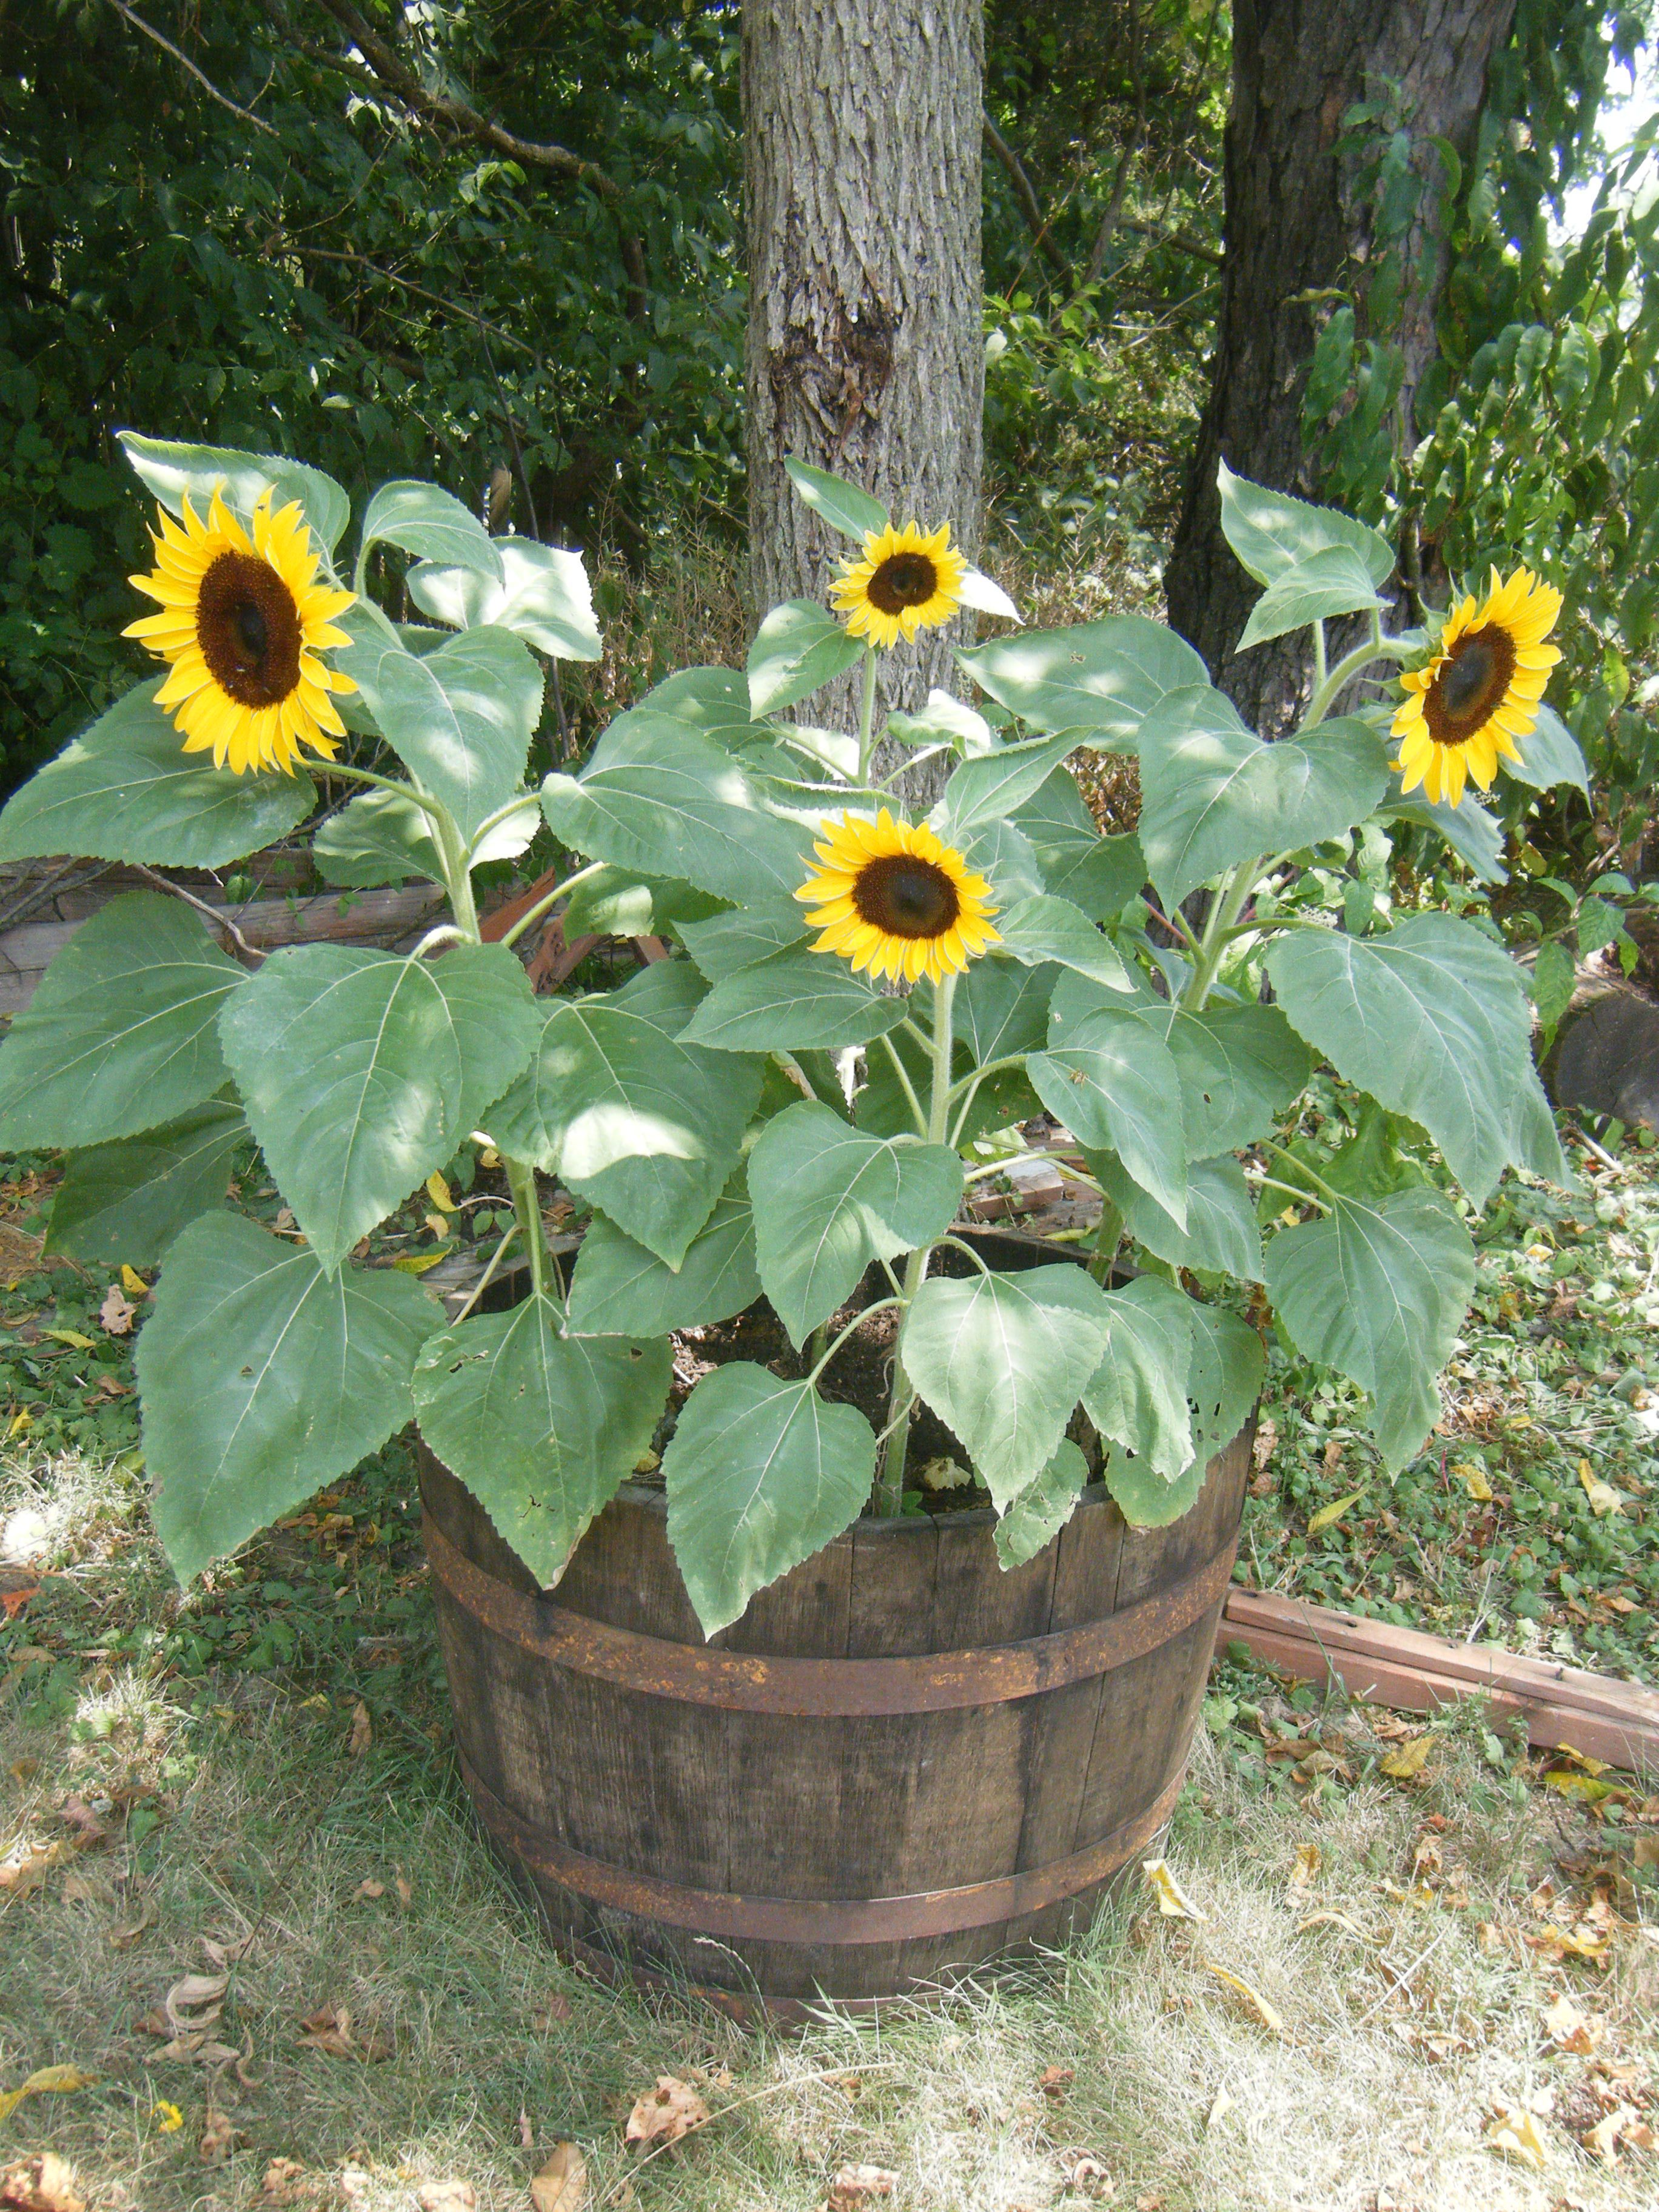 Dwarf Sunflowers I Am In Love Planted These Three Diffe Types Of Pots Small Singular Pot Larger Plastic And One My Burlap Bag